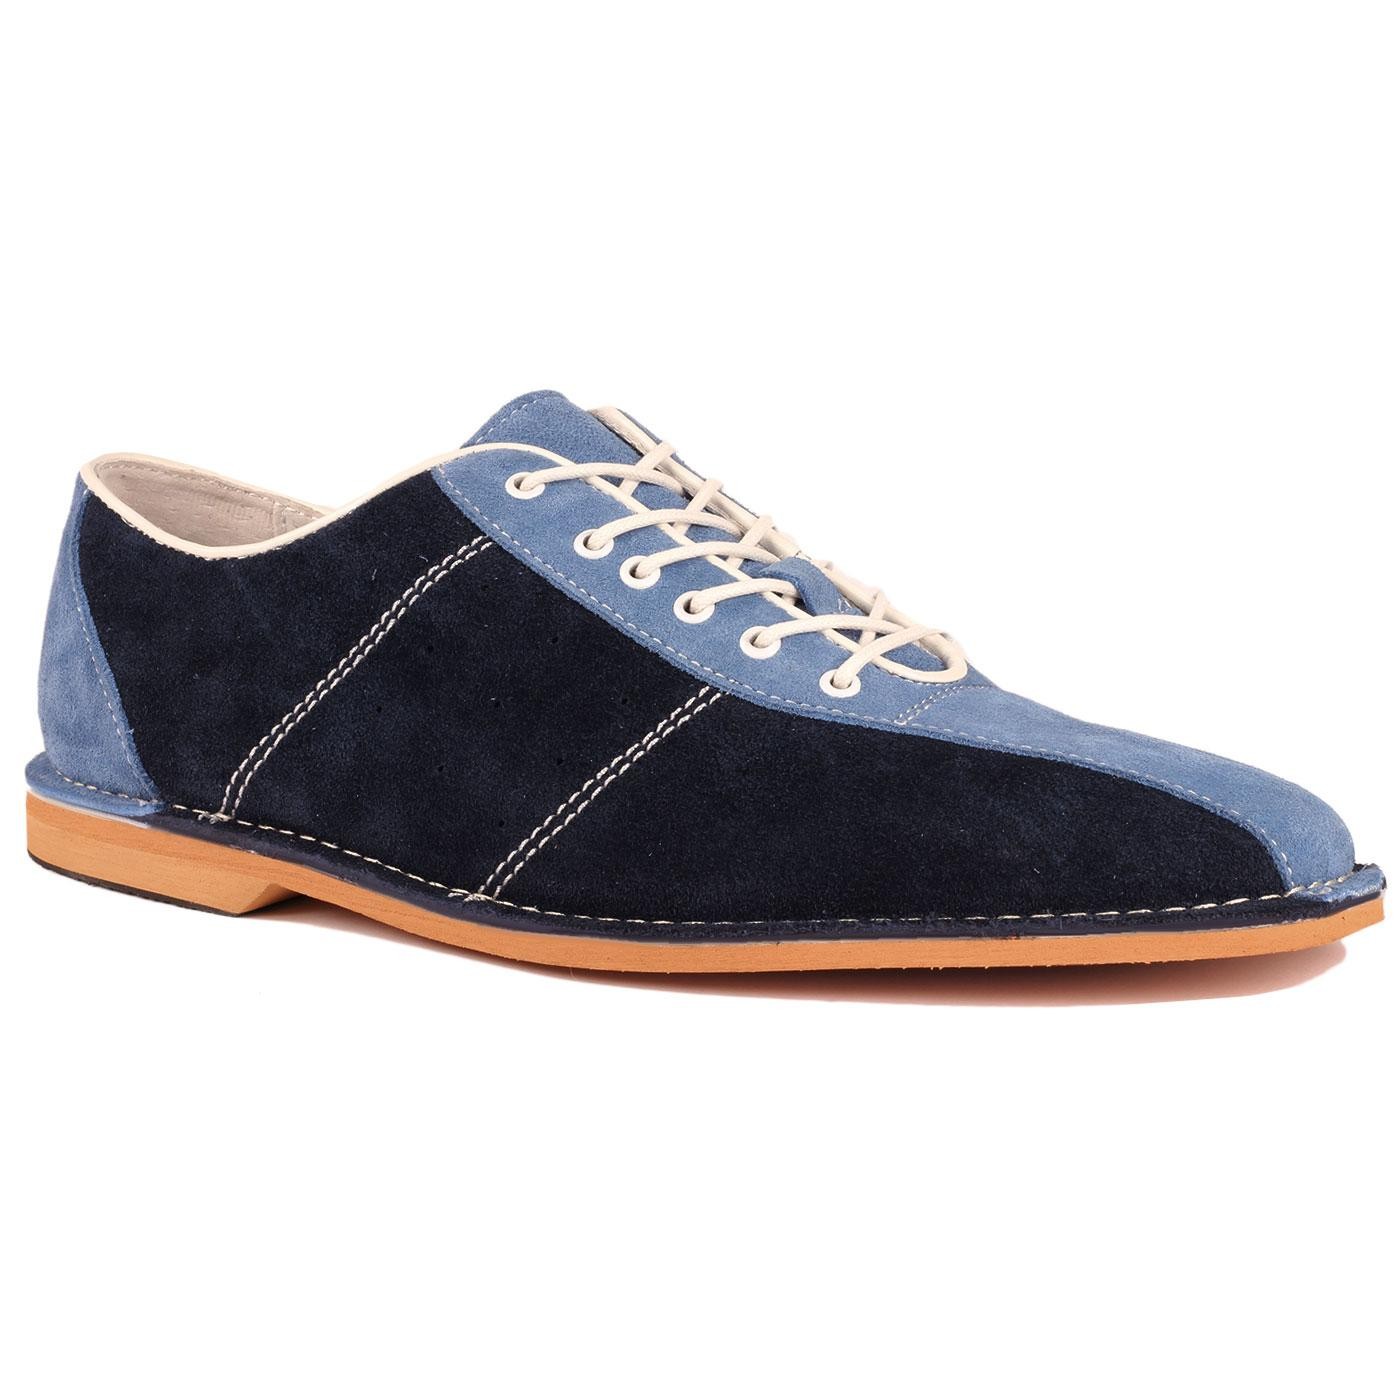 All Up MADCAP ENGLAND Mod Suede Bowling Shoes NAVY